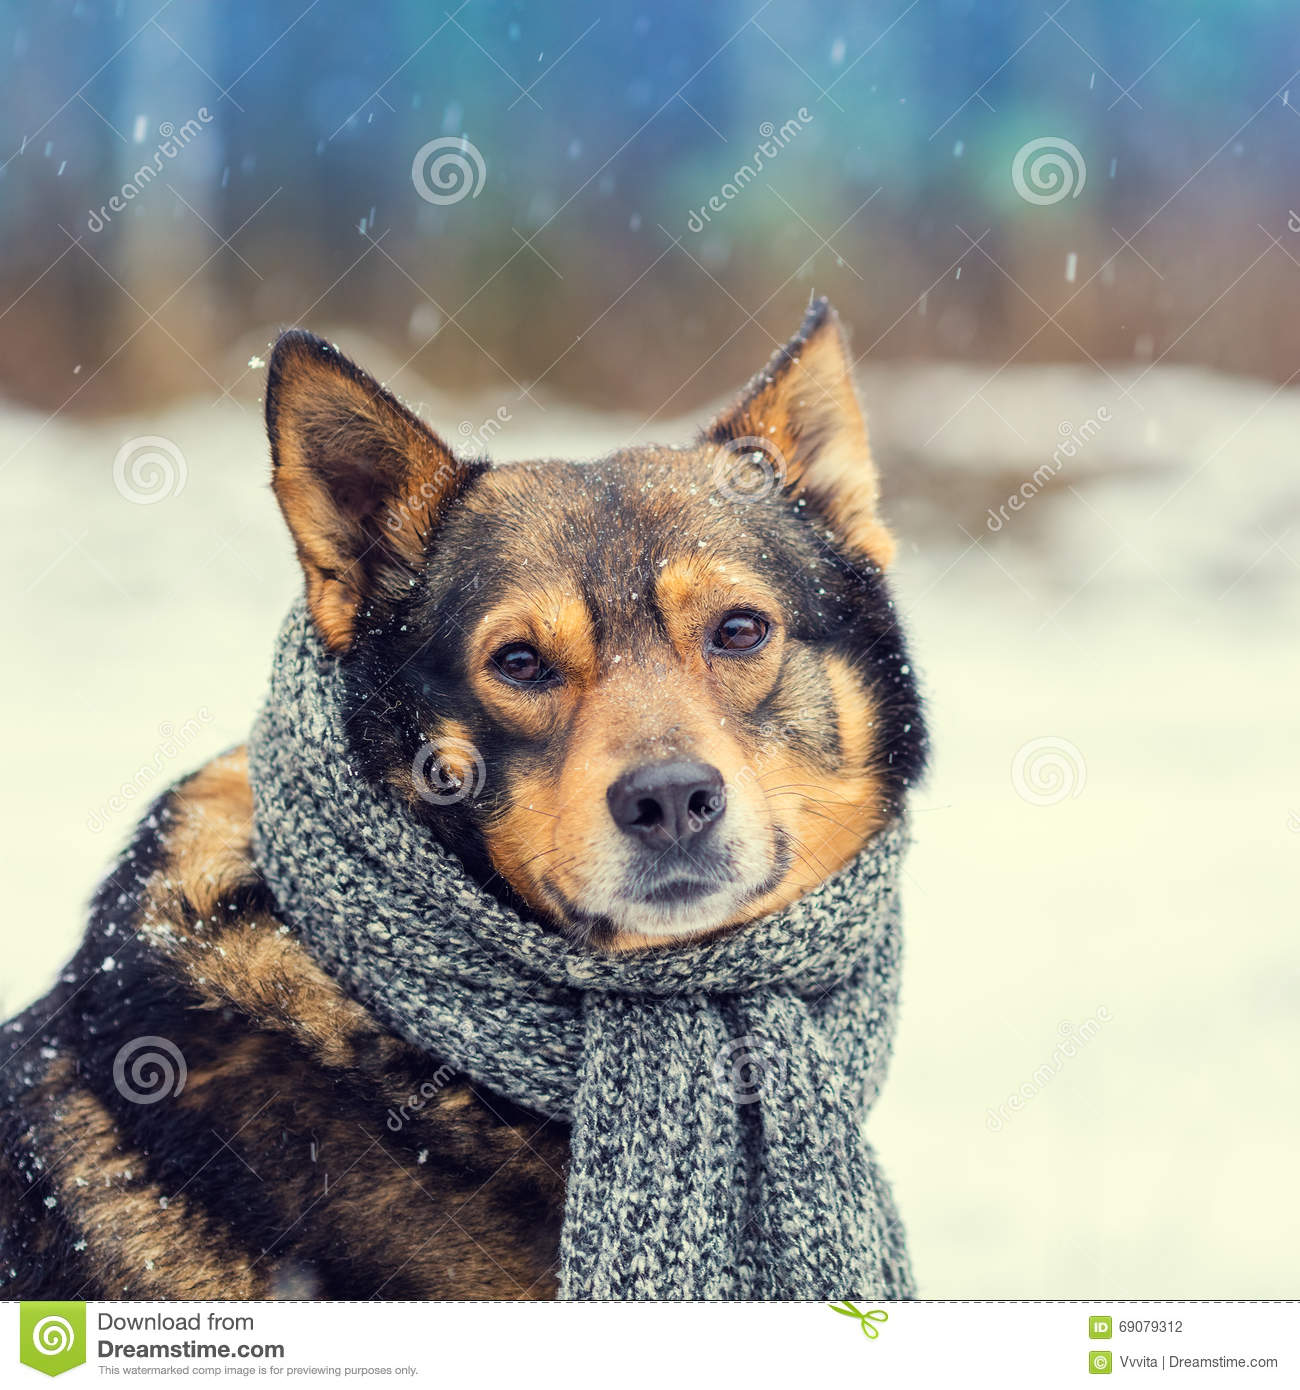 Dog With Knitted Scarf Stock Photo - Image: 69079312